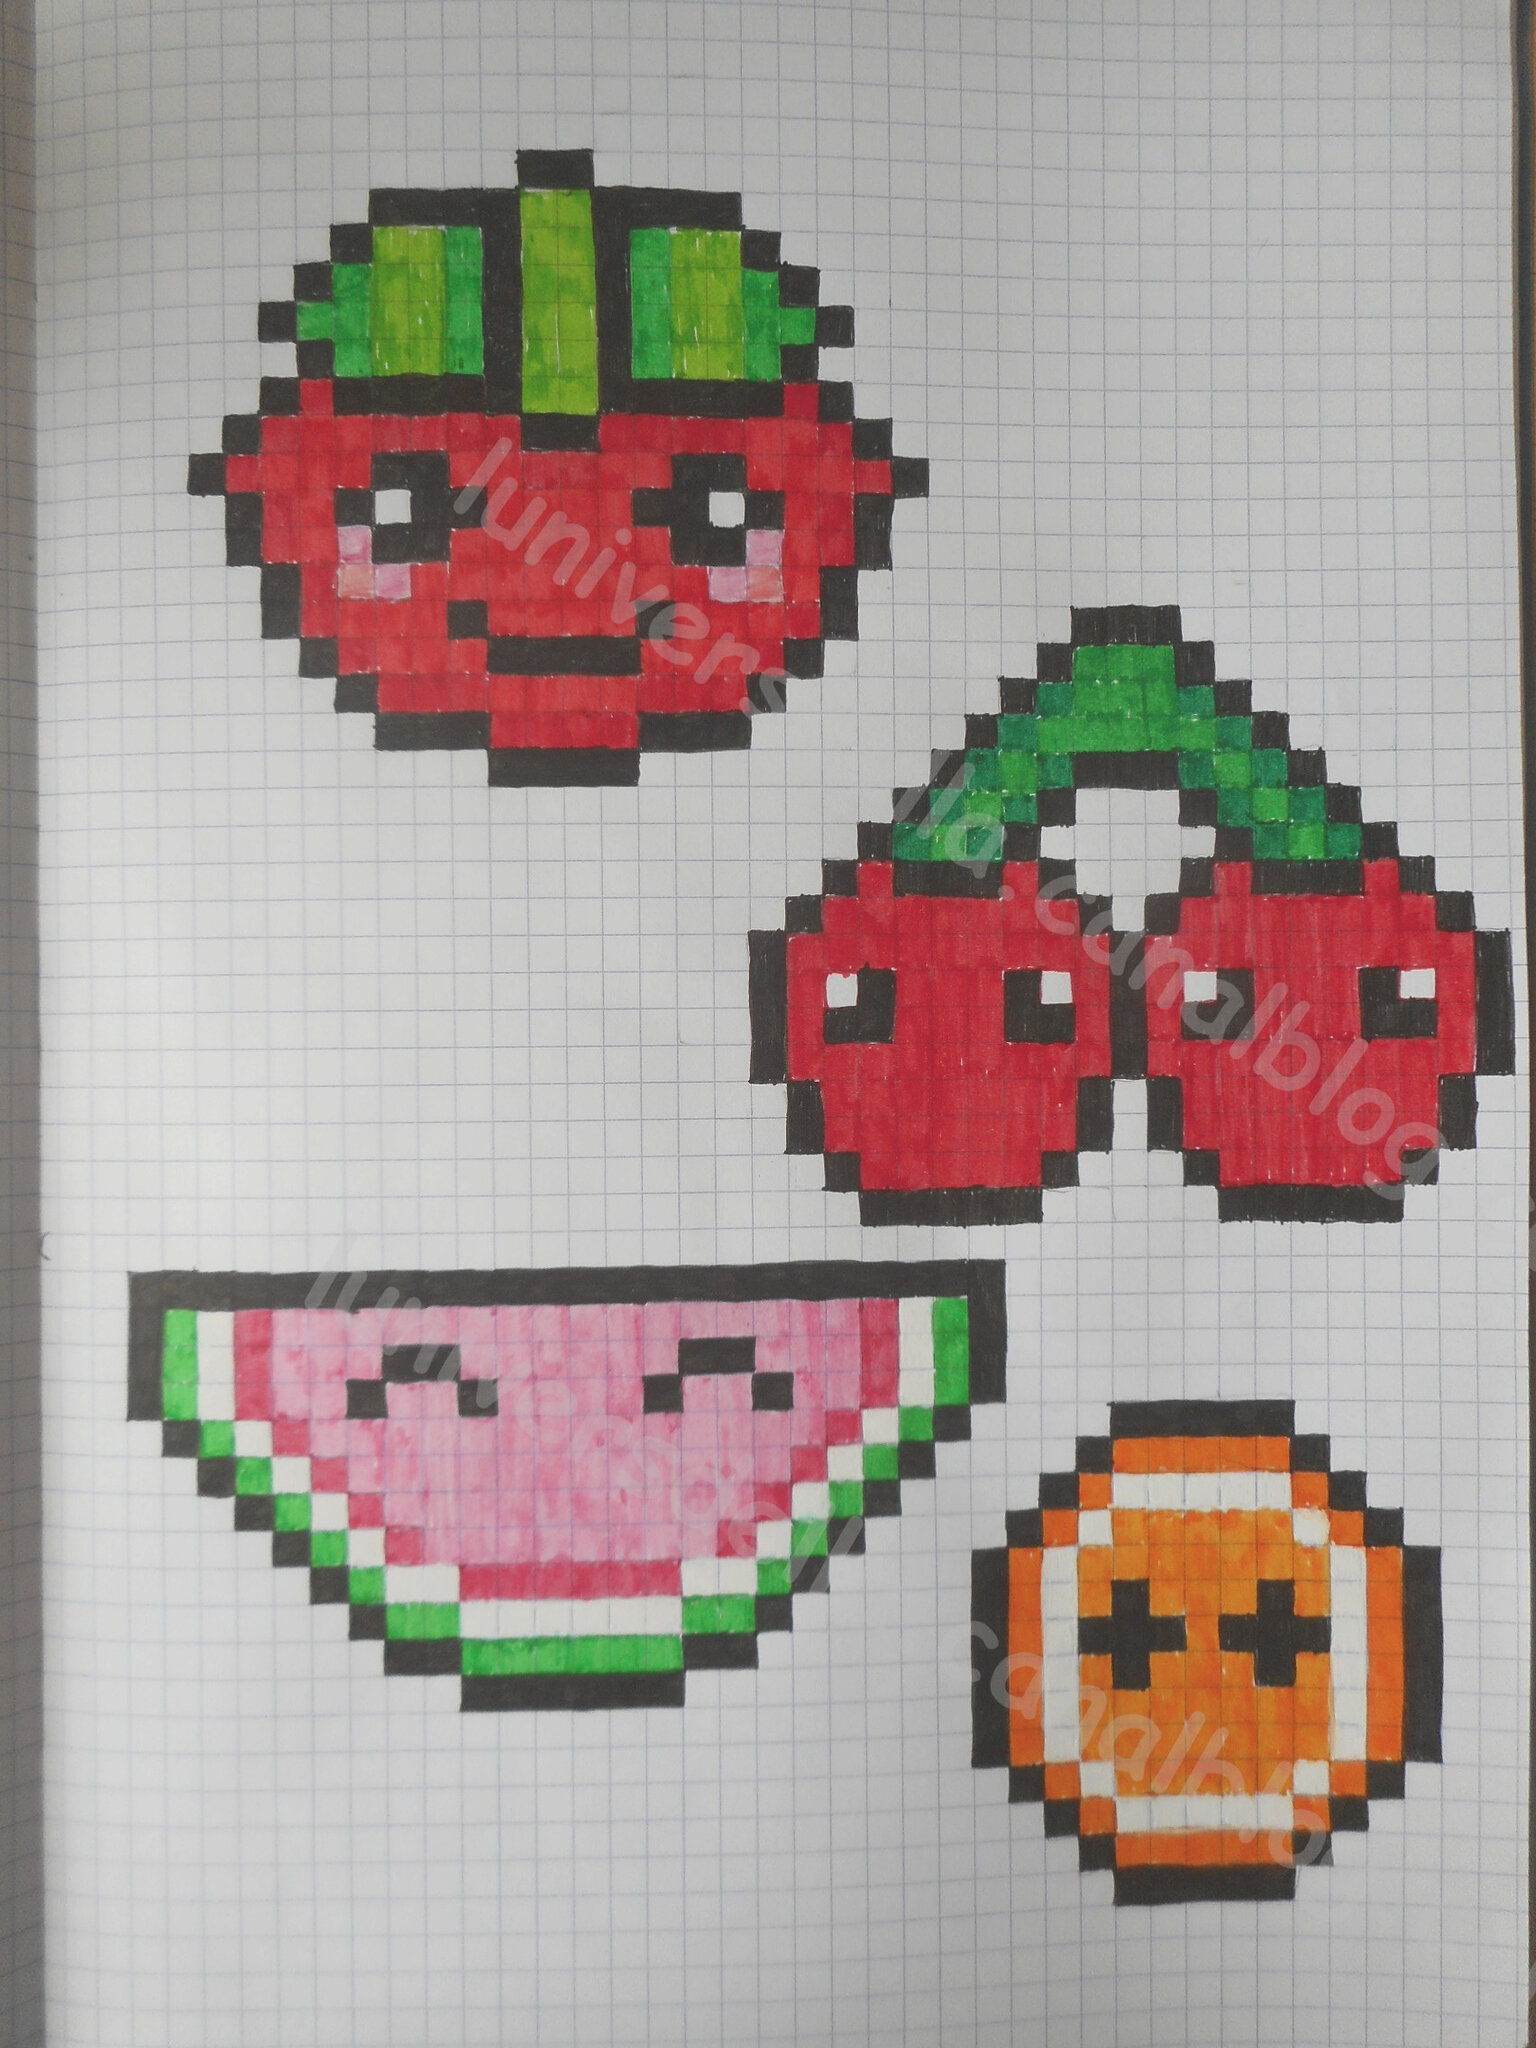 Pixel Art Fruits Kawaii Lunivers Della